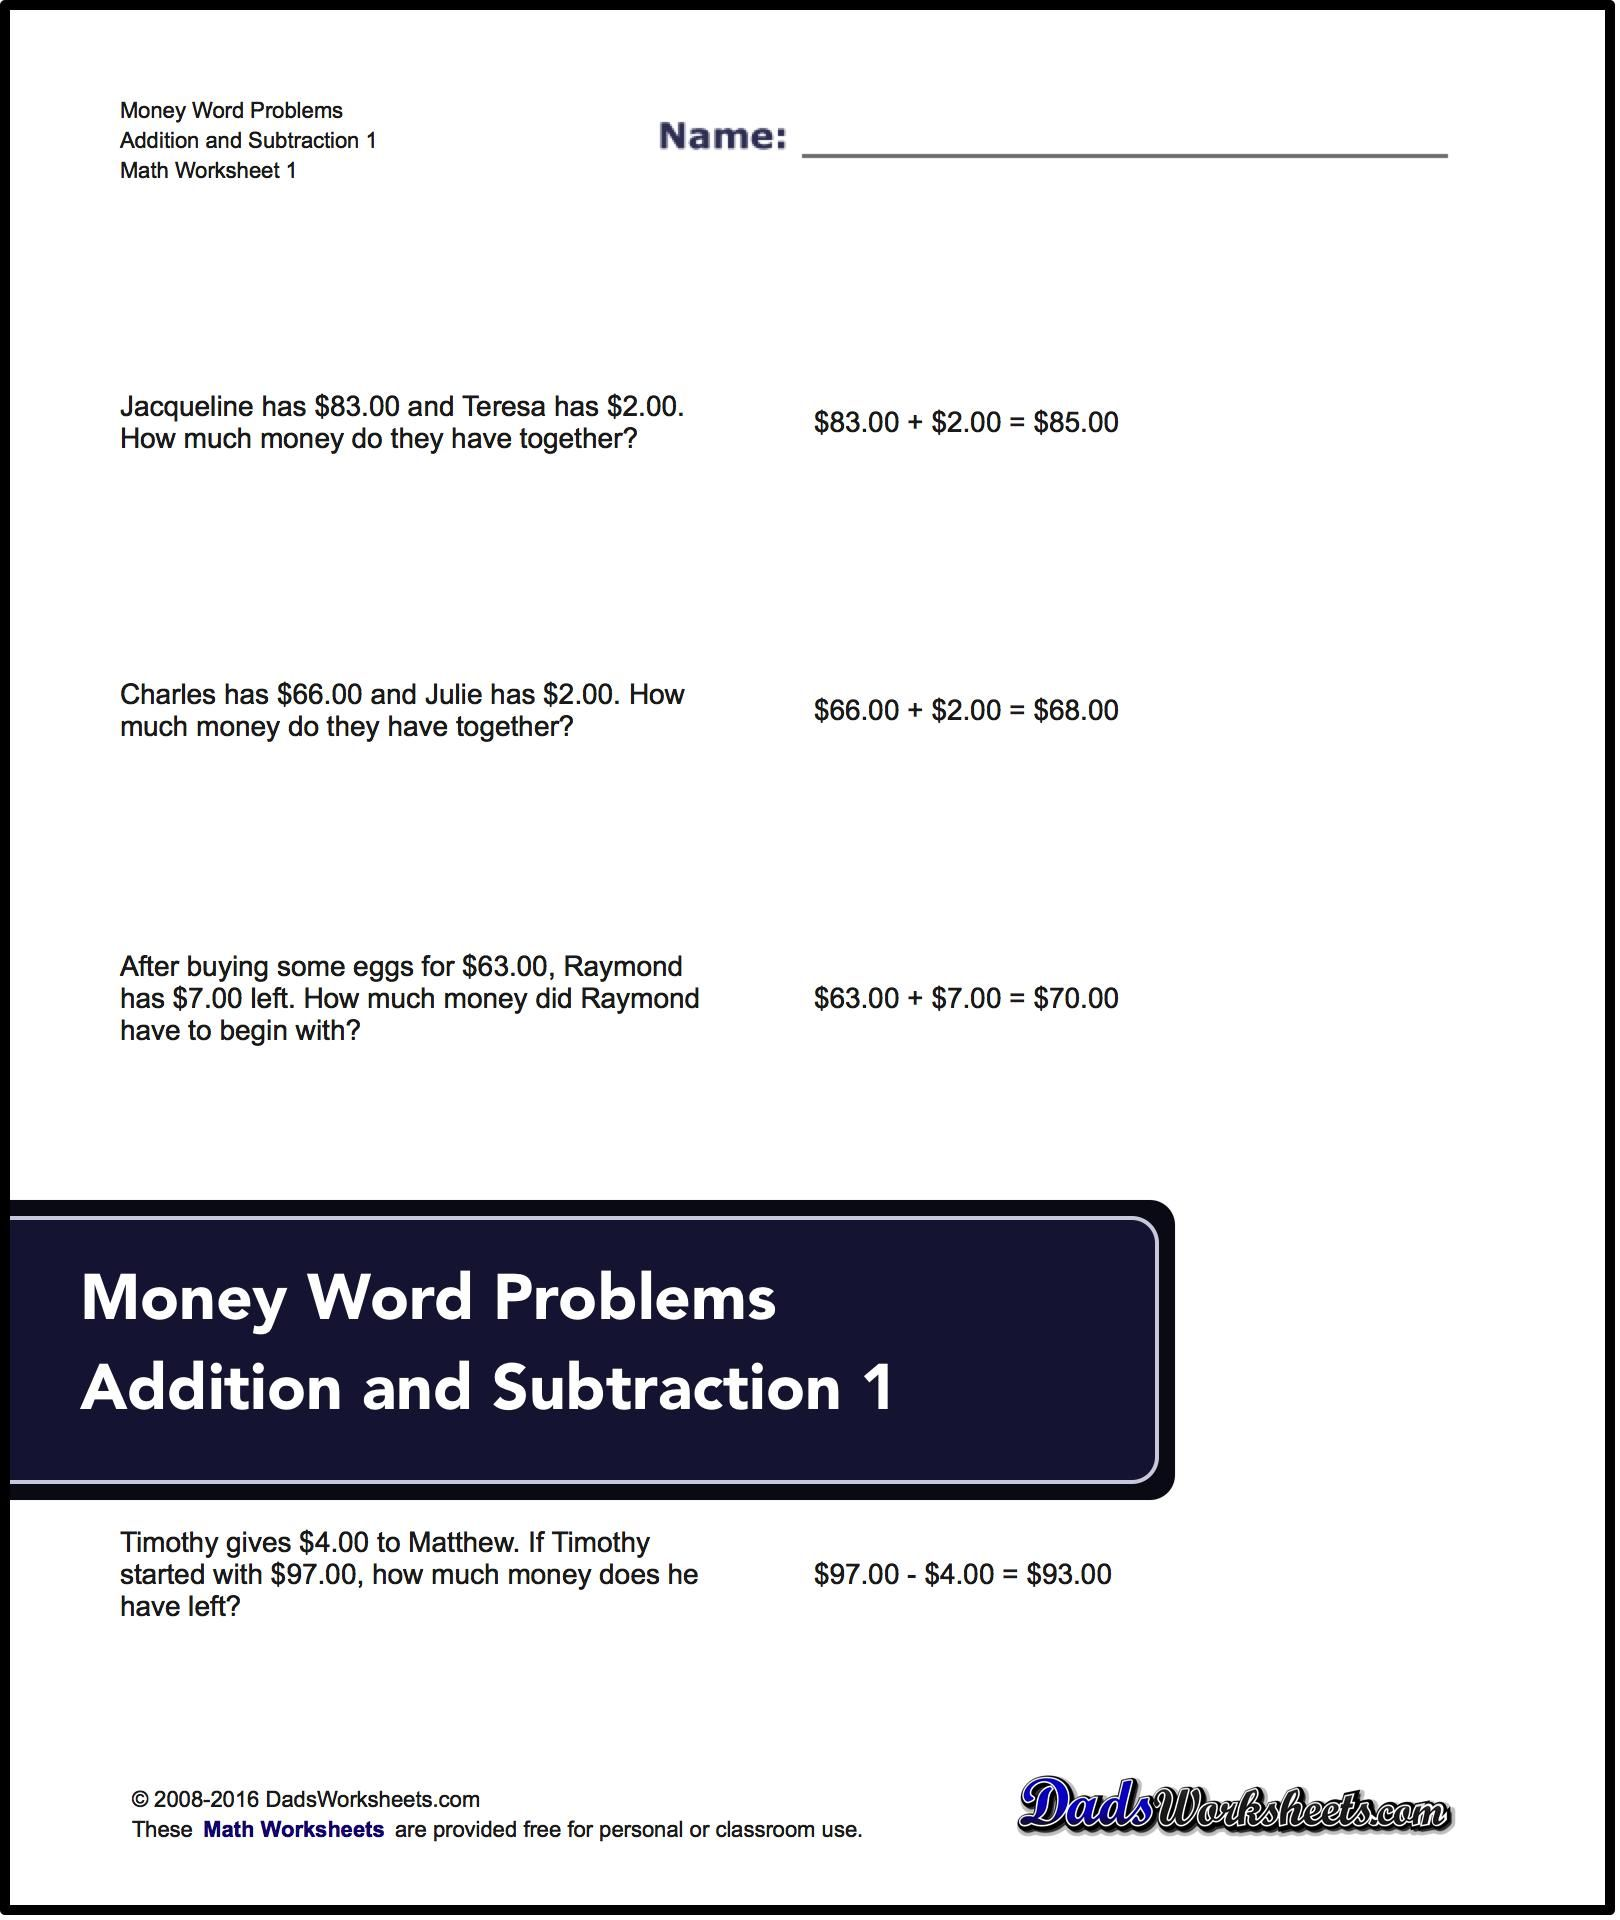 Free Printable Addition And Subtraction Word Problems For Money All With Answer Keys Money Word Problems Word Problems Word Problem Worksheets Addition and subtraction word problem